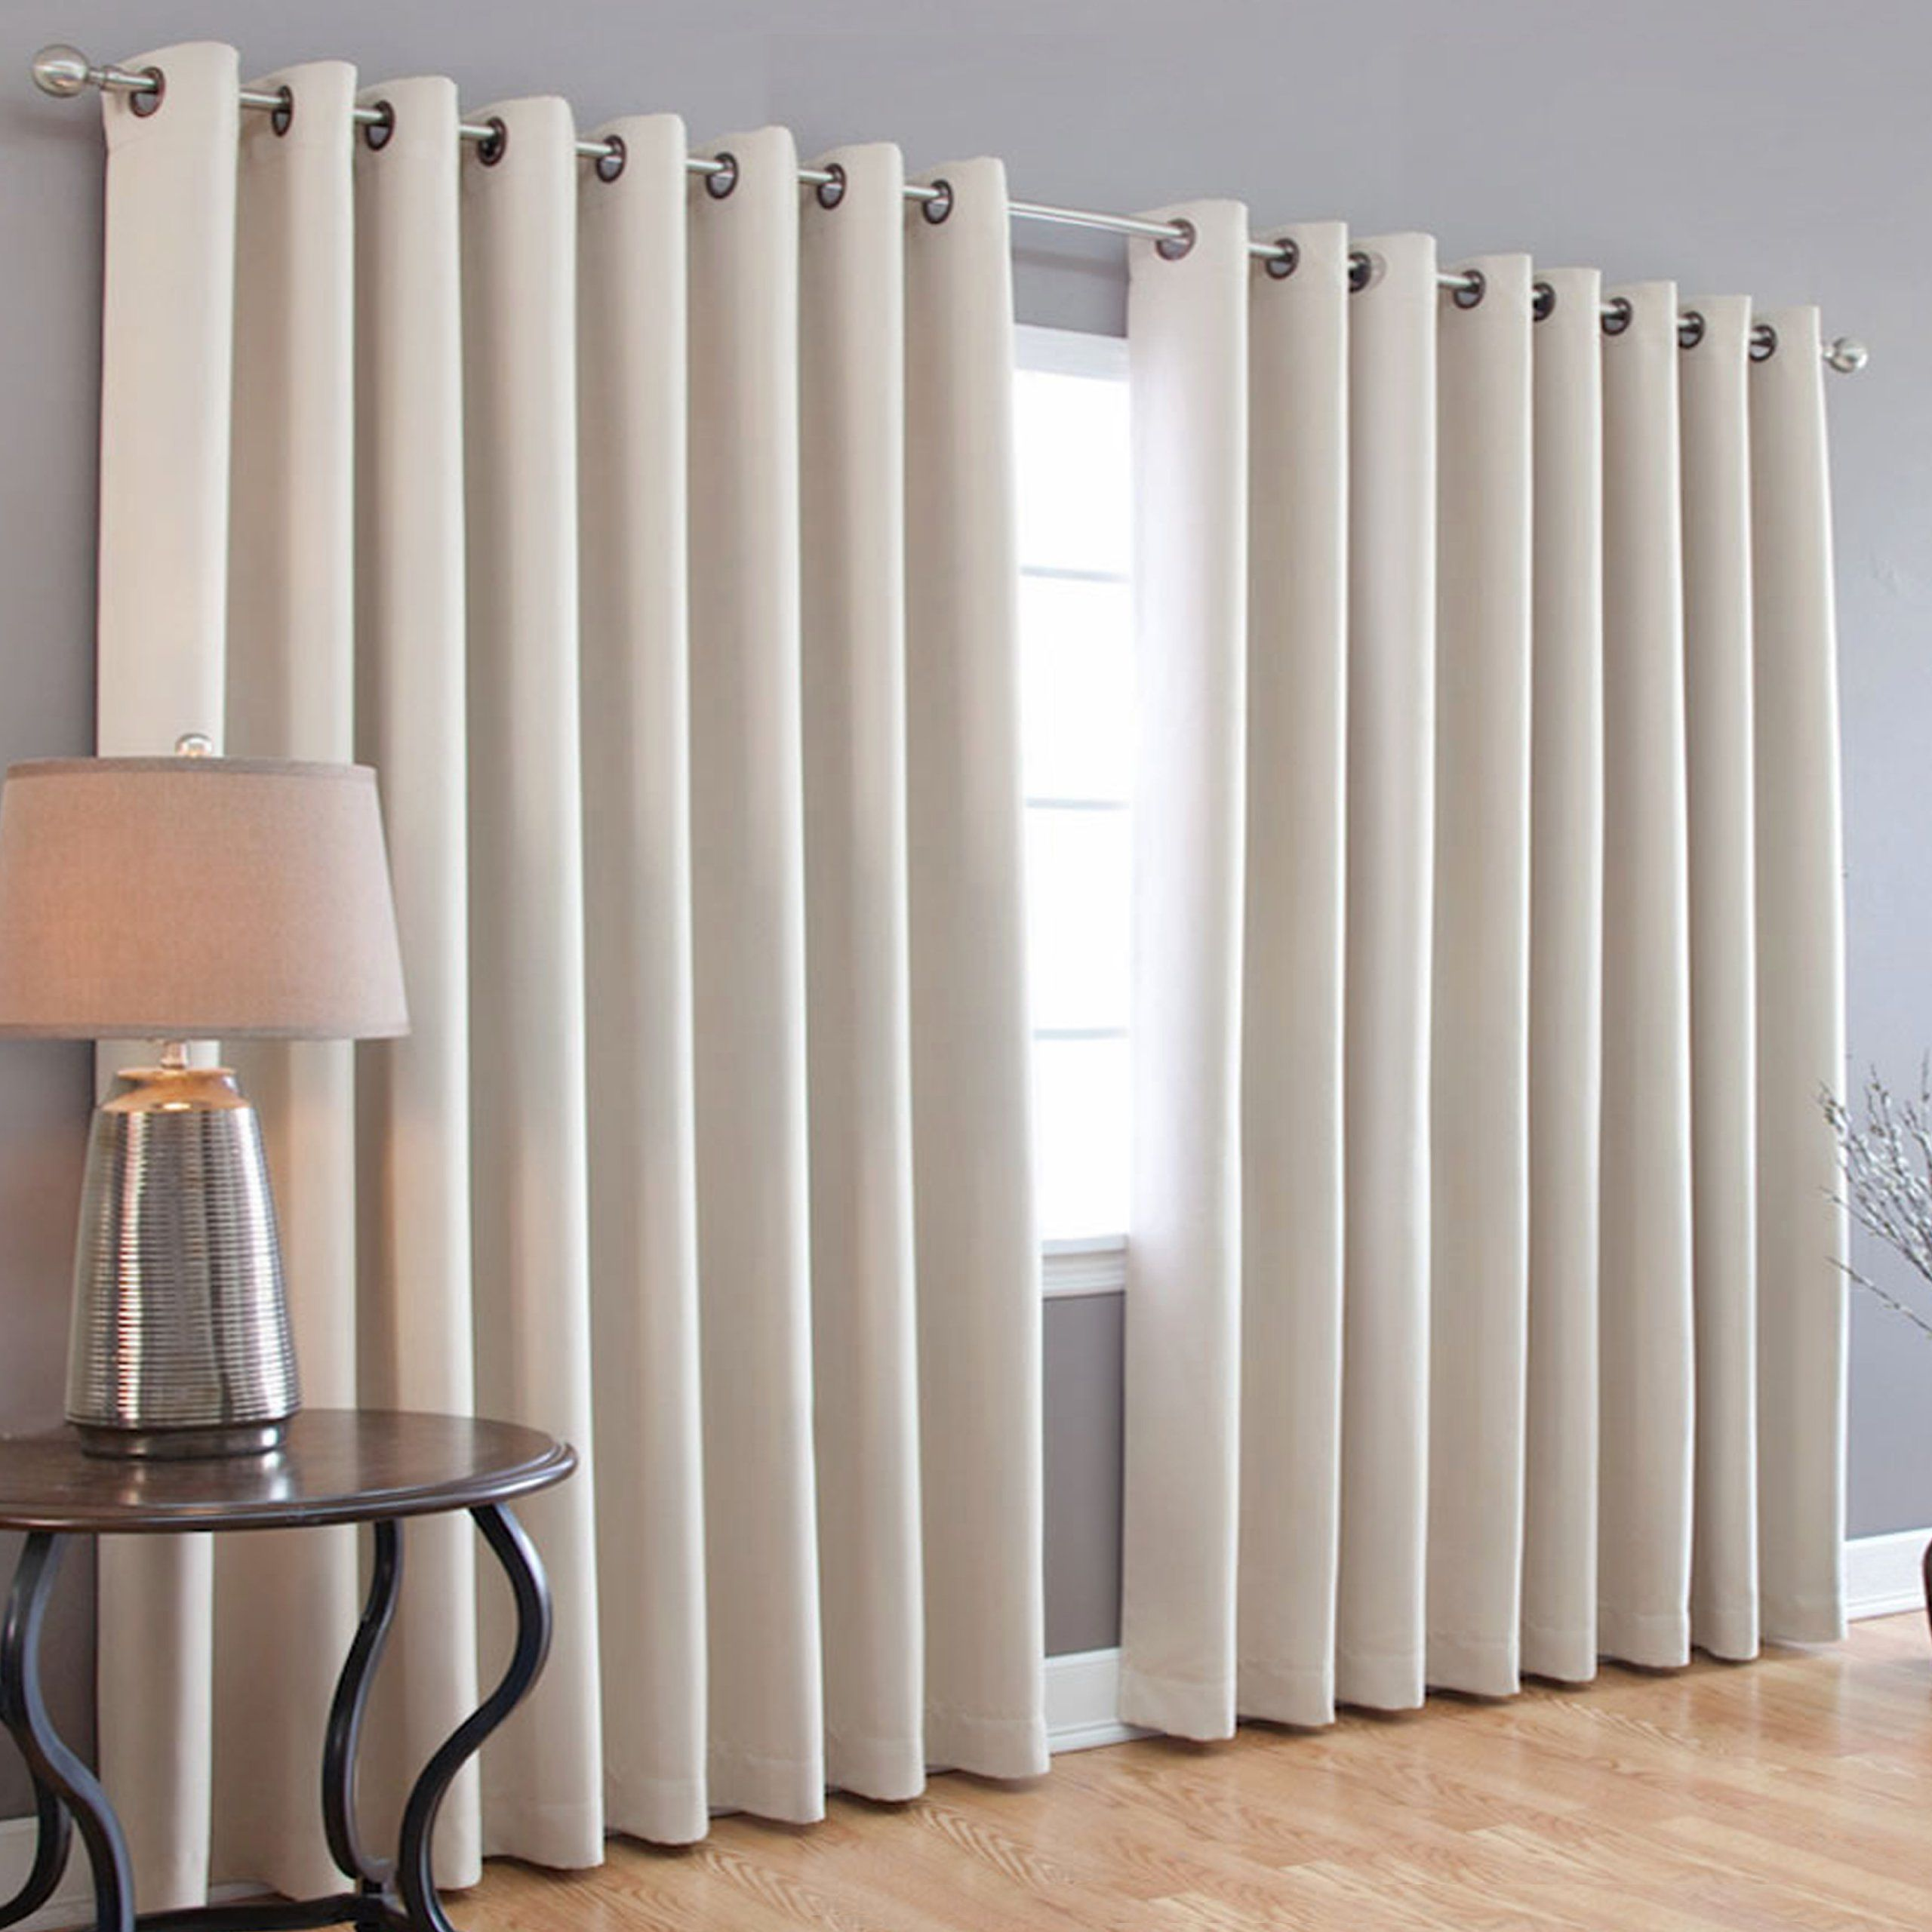 Best Home Fashion Thermal Blackout Curtain With Wide Width Grommet Top 100 Inch By 95 Beige Window Treatment Curtains